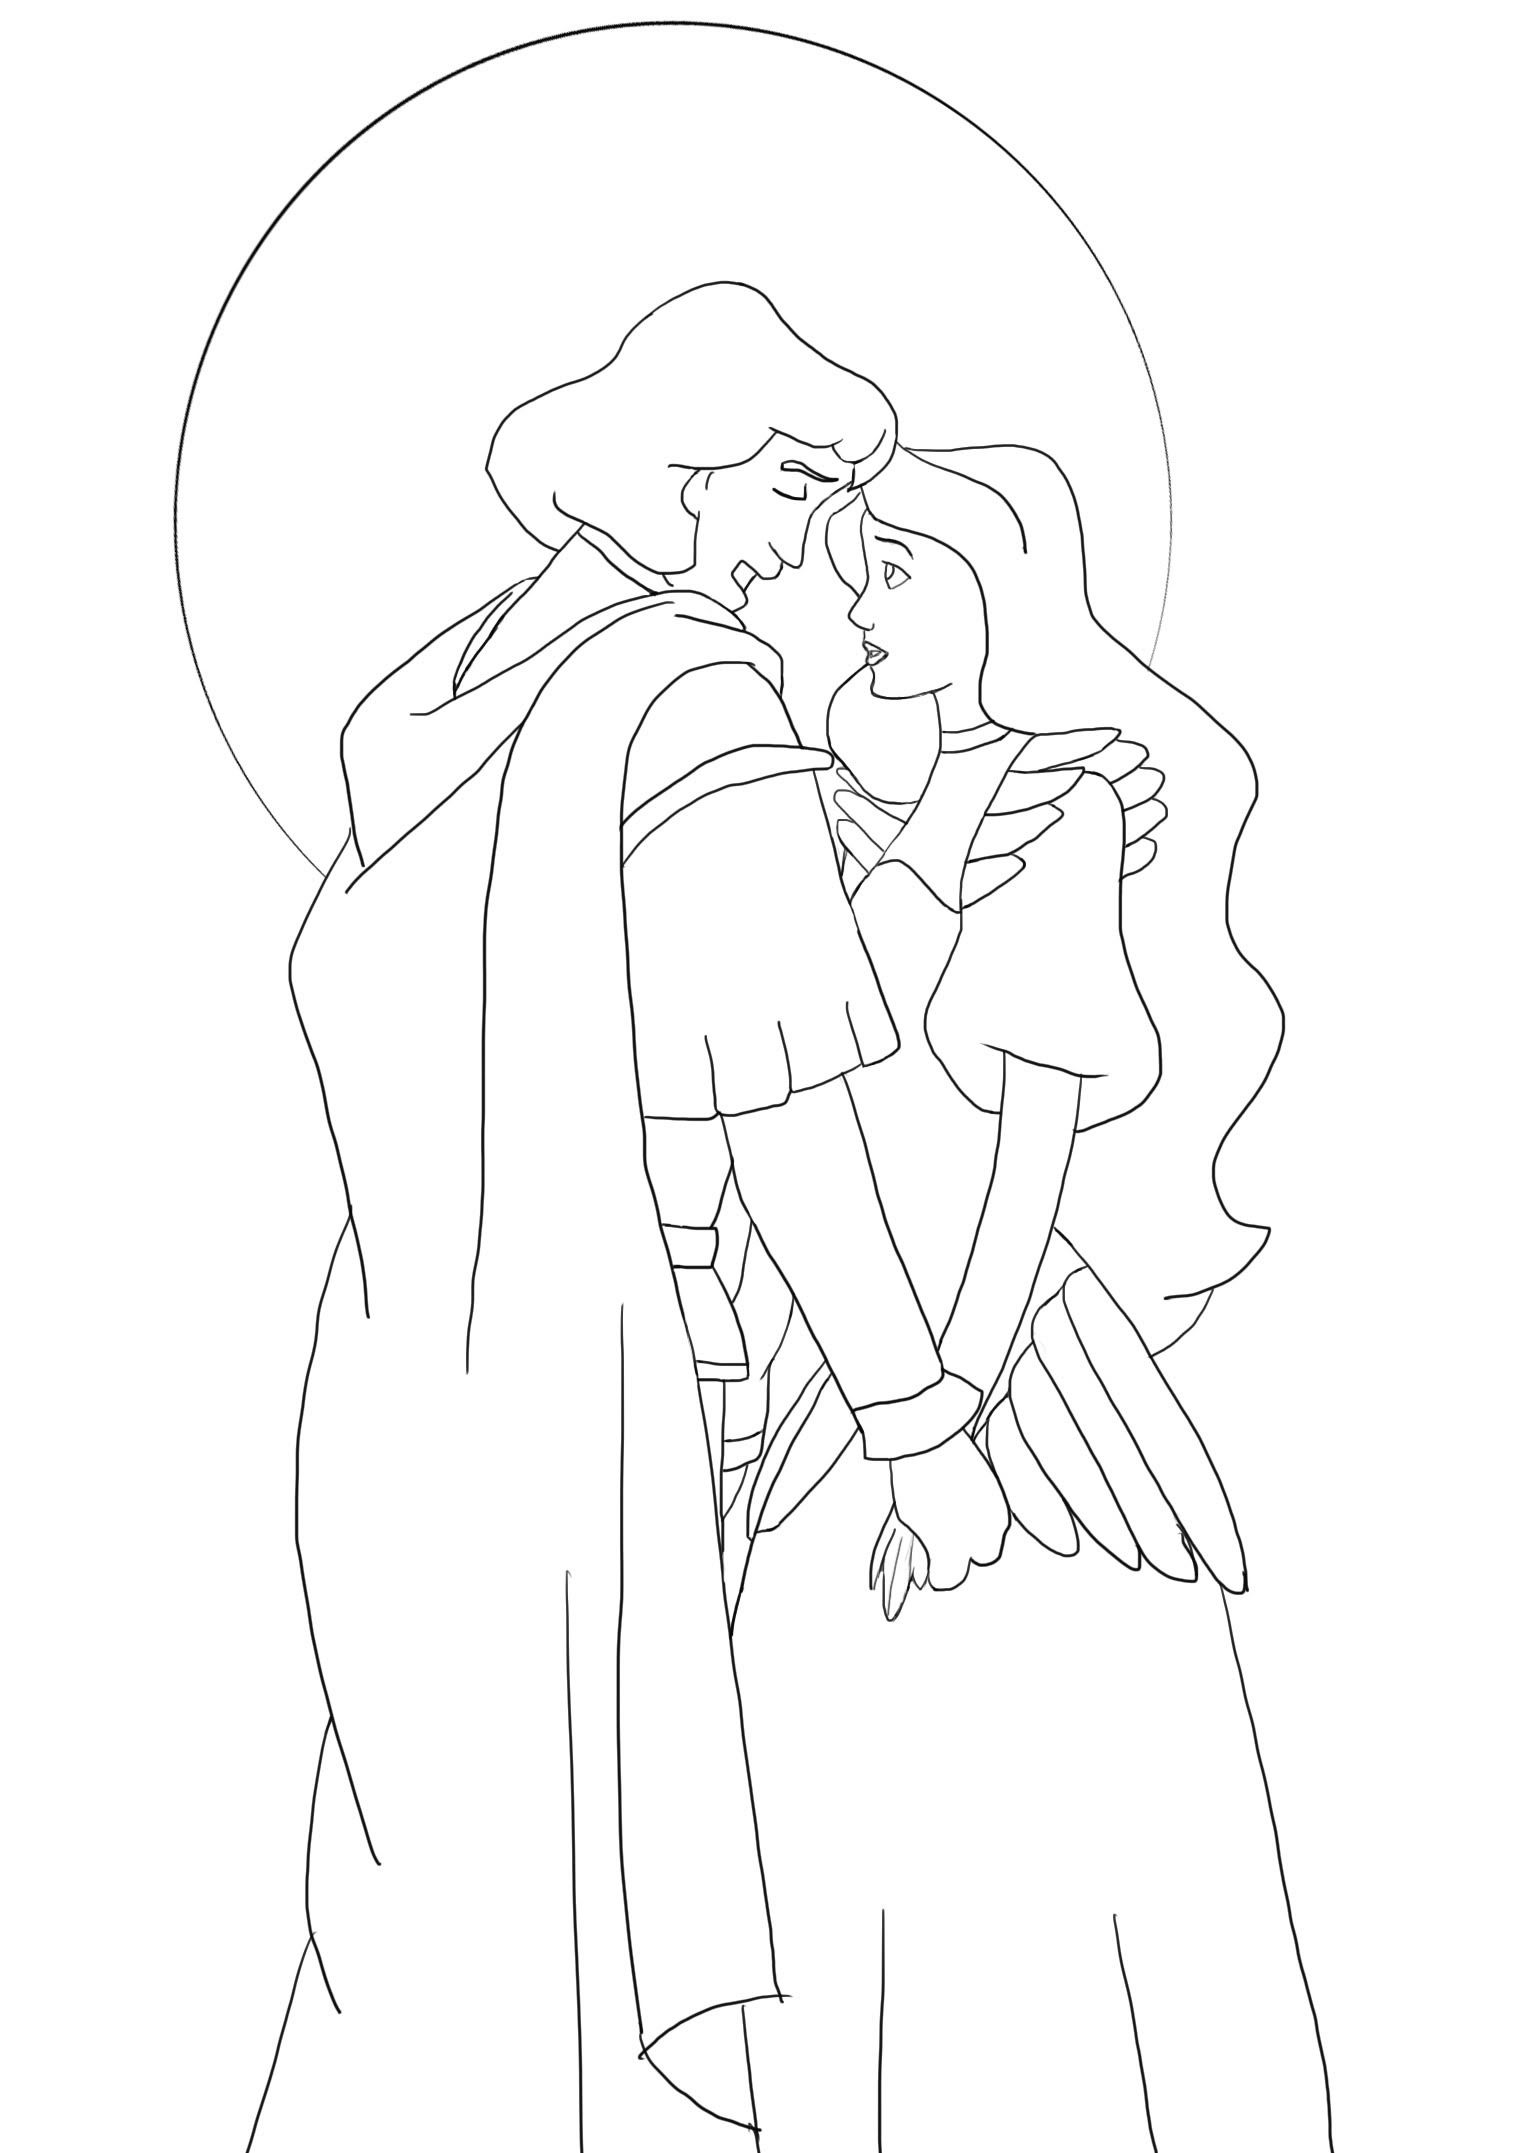 disney swan princess coloring pages - photo#9